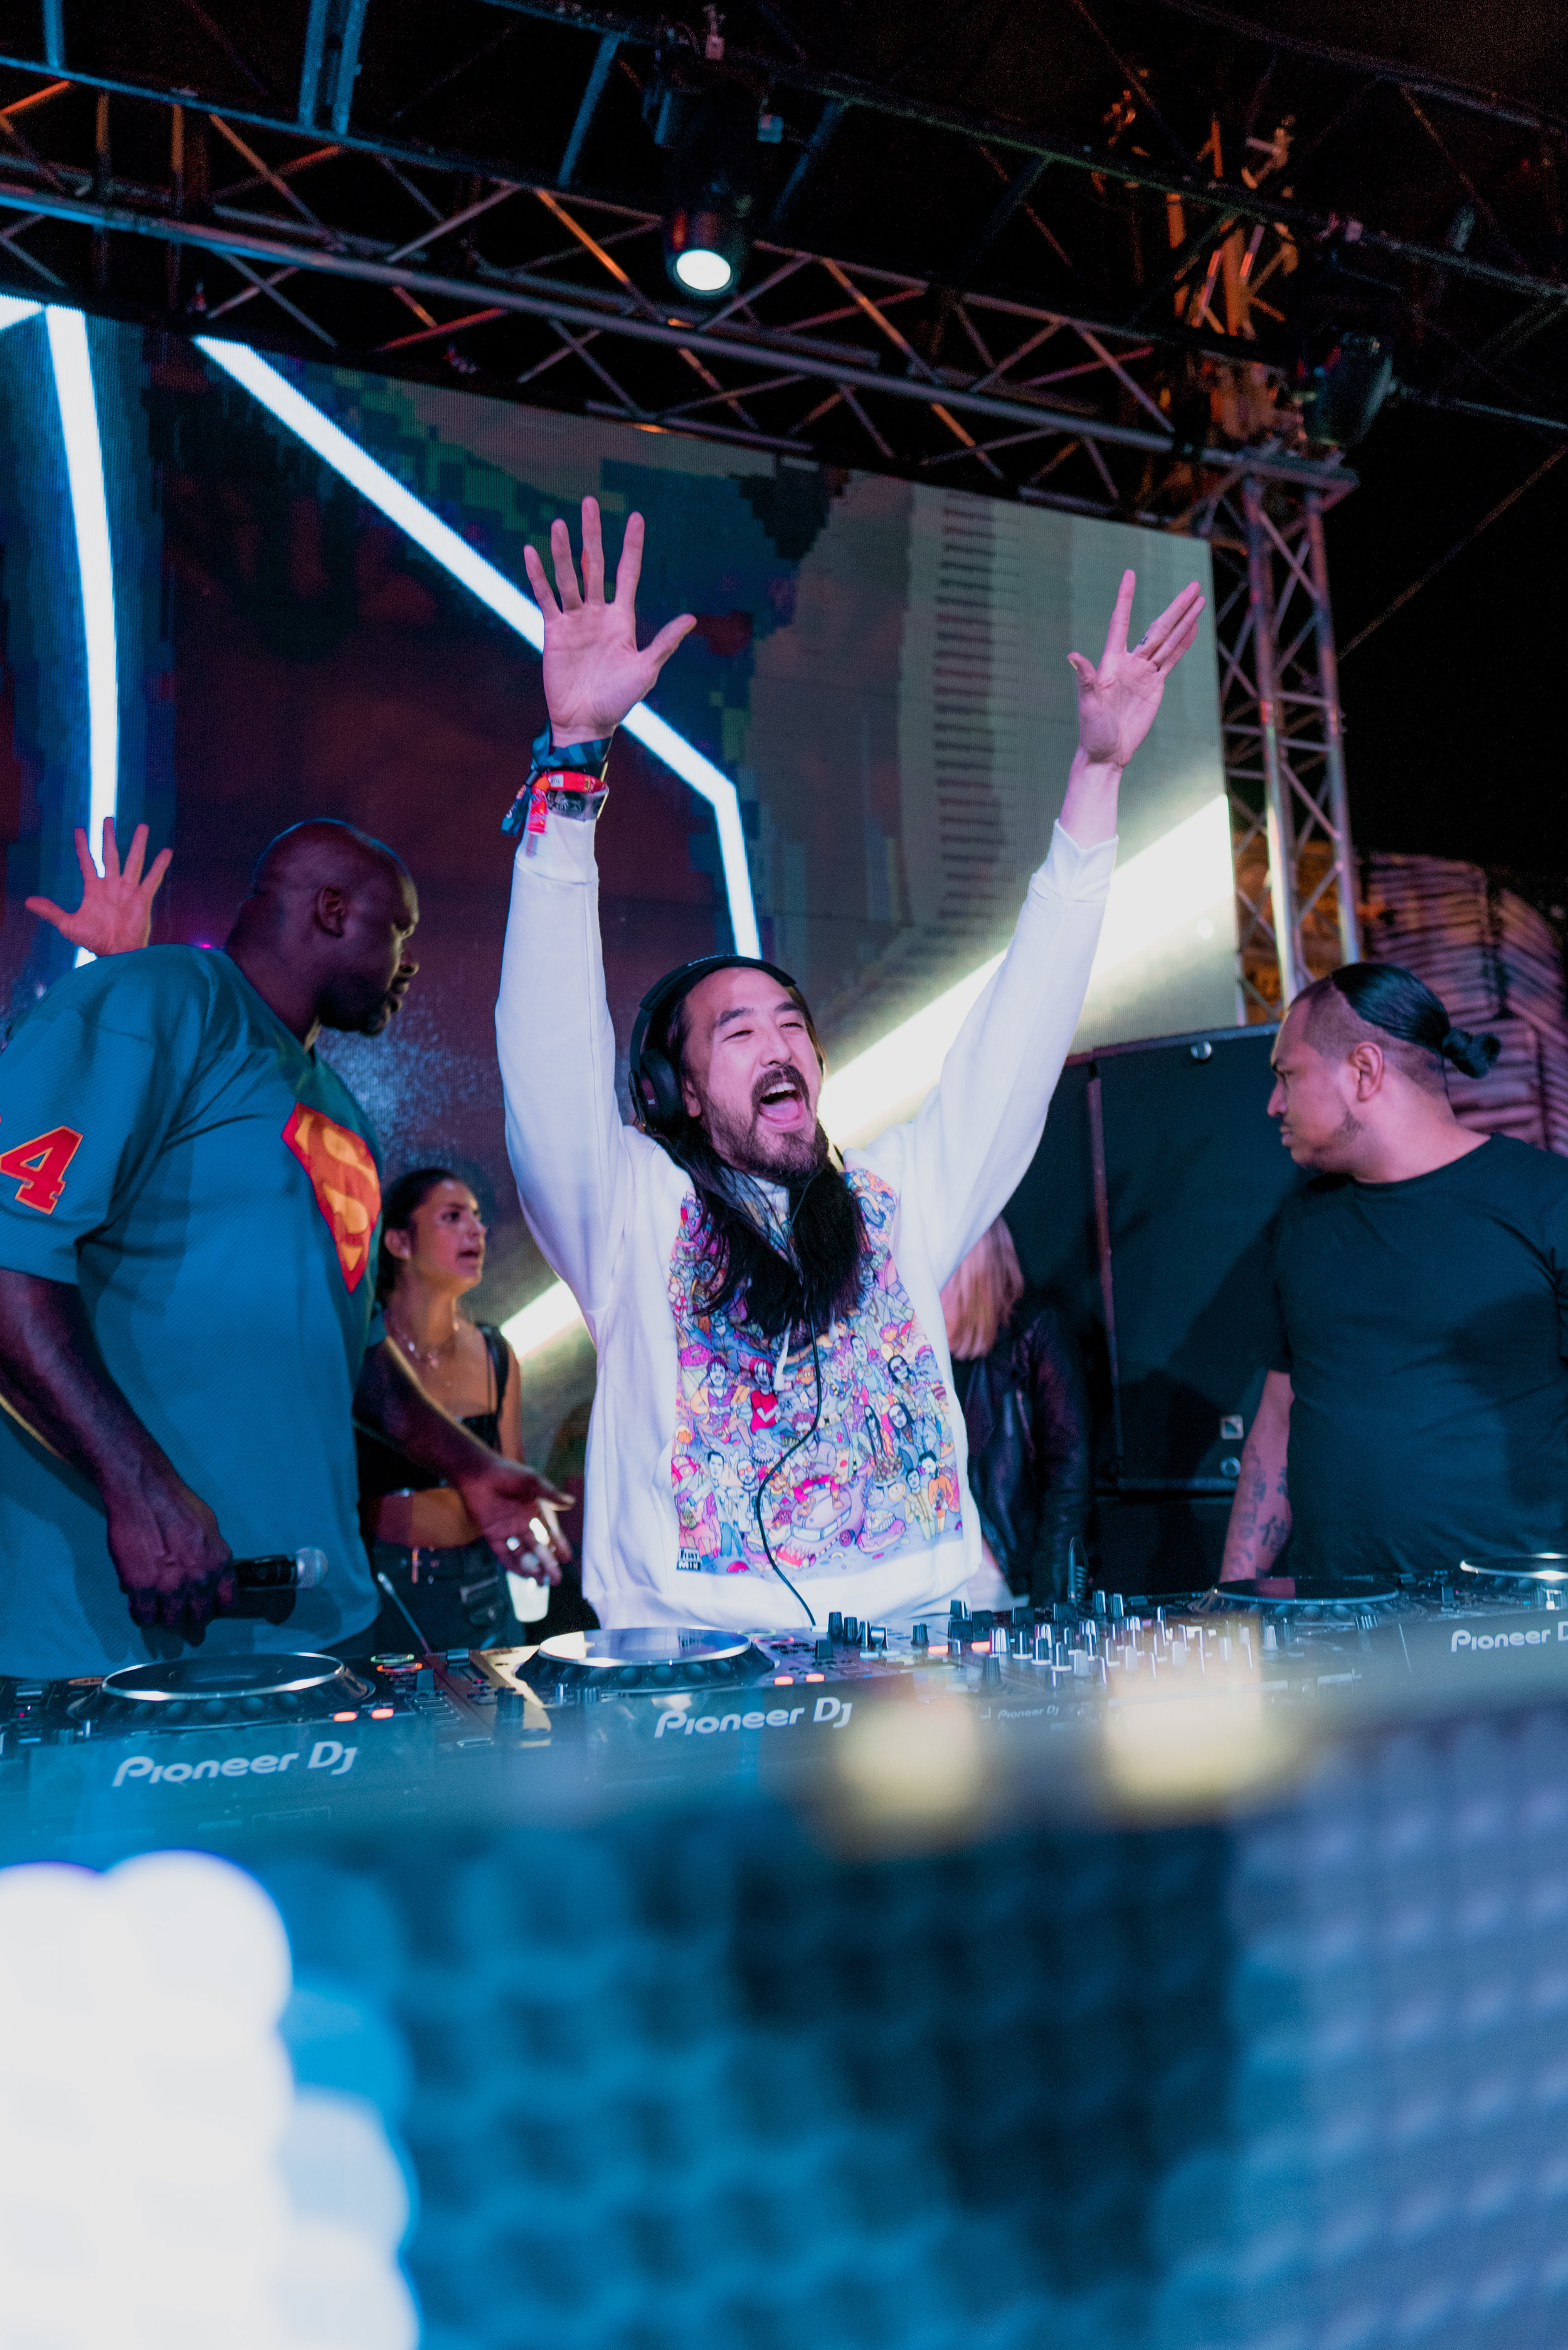 Event: Shaq's Fun House  Artist pictured: Steve Aoki   Event Photography 03/24/18